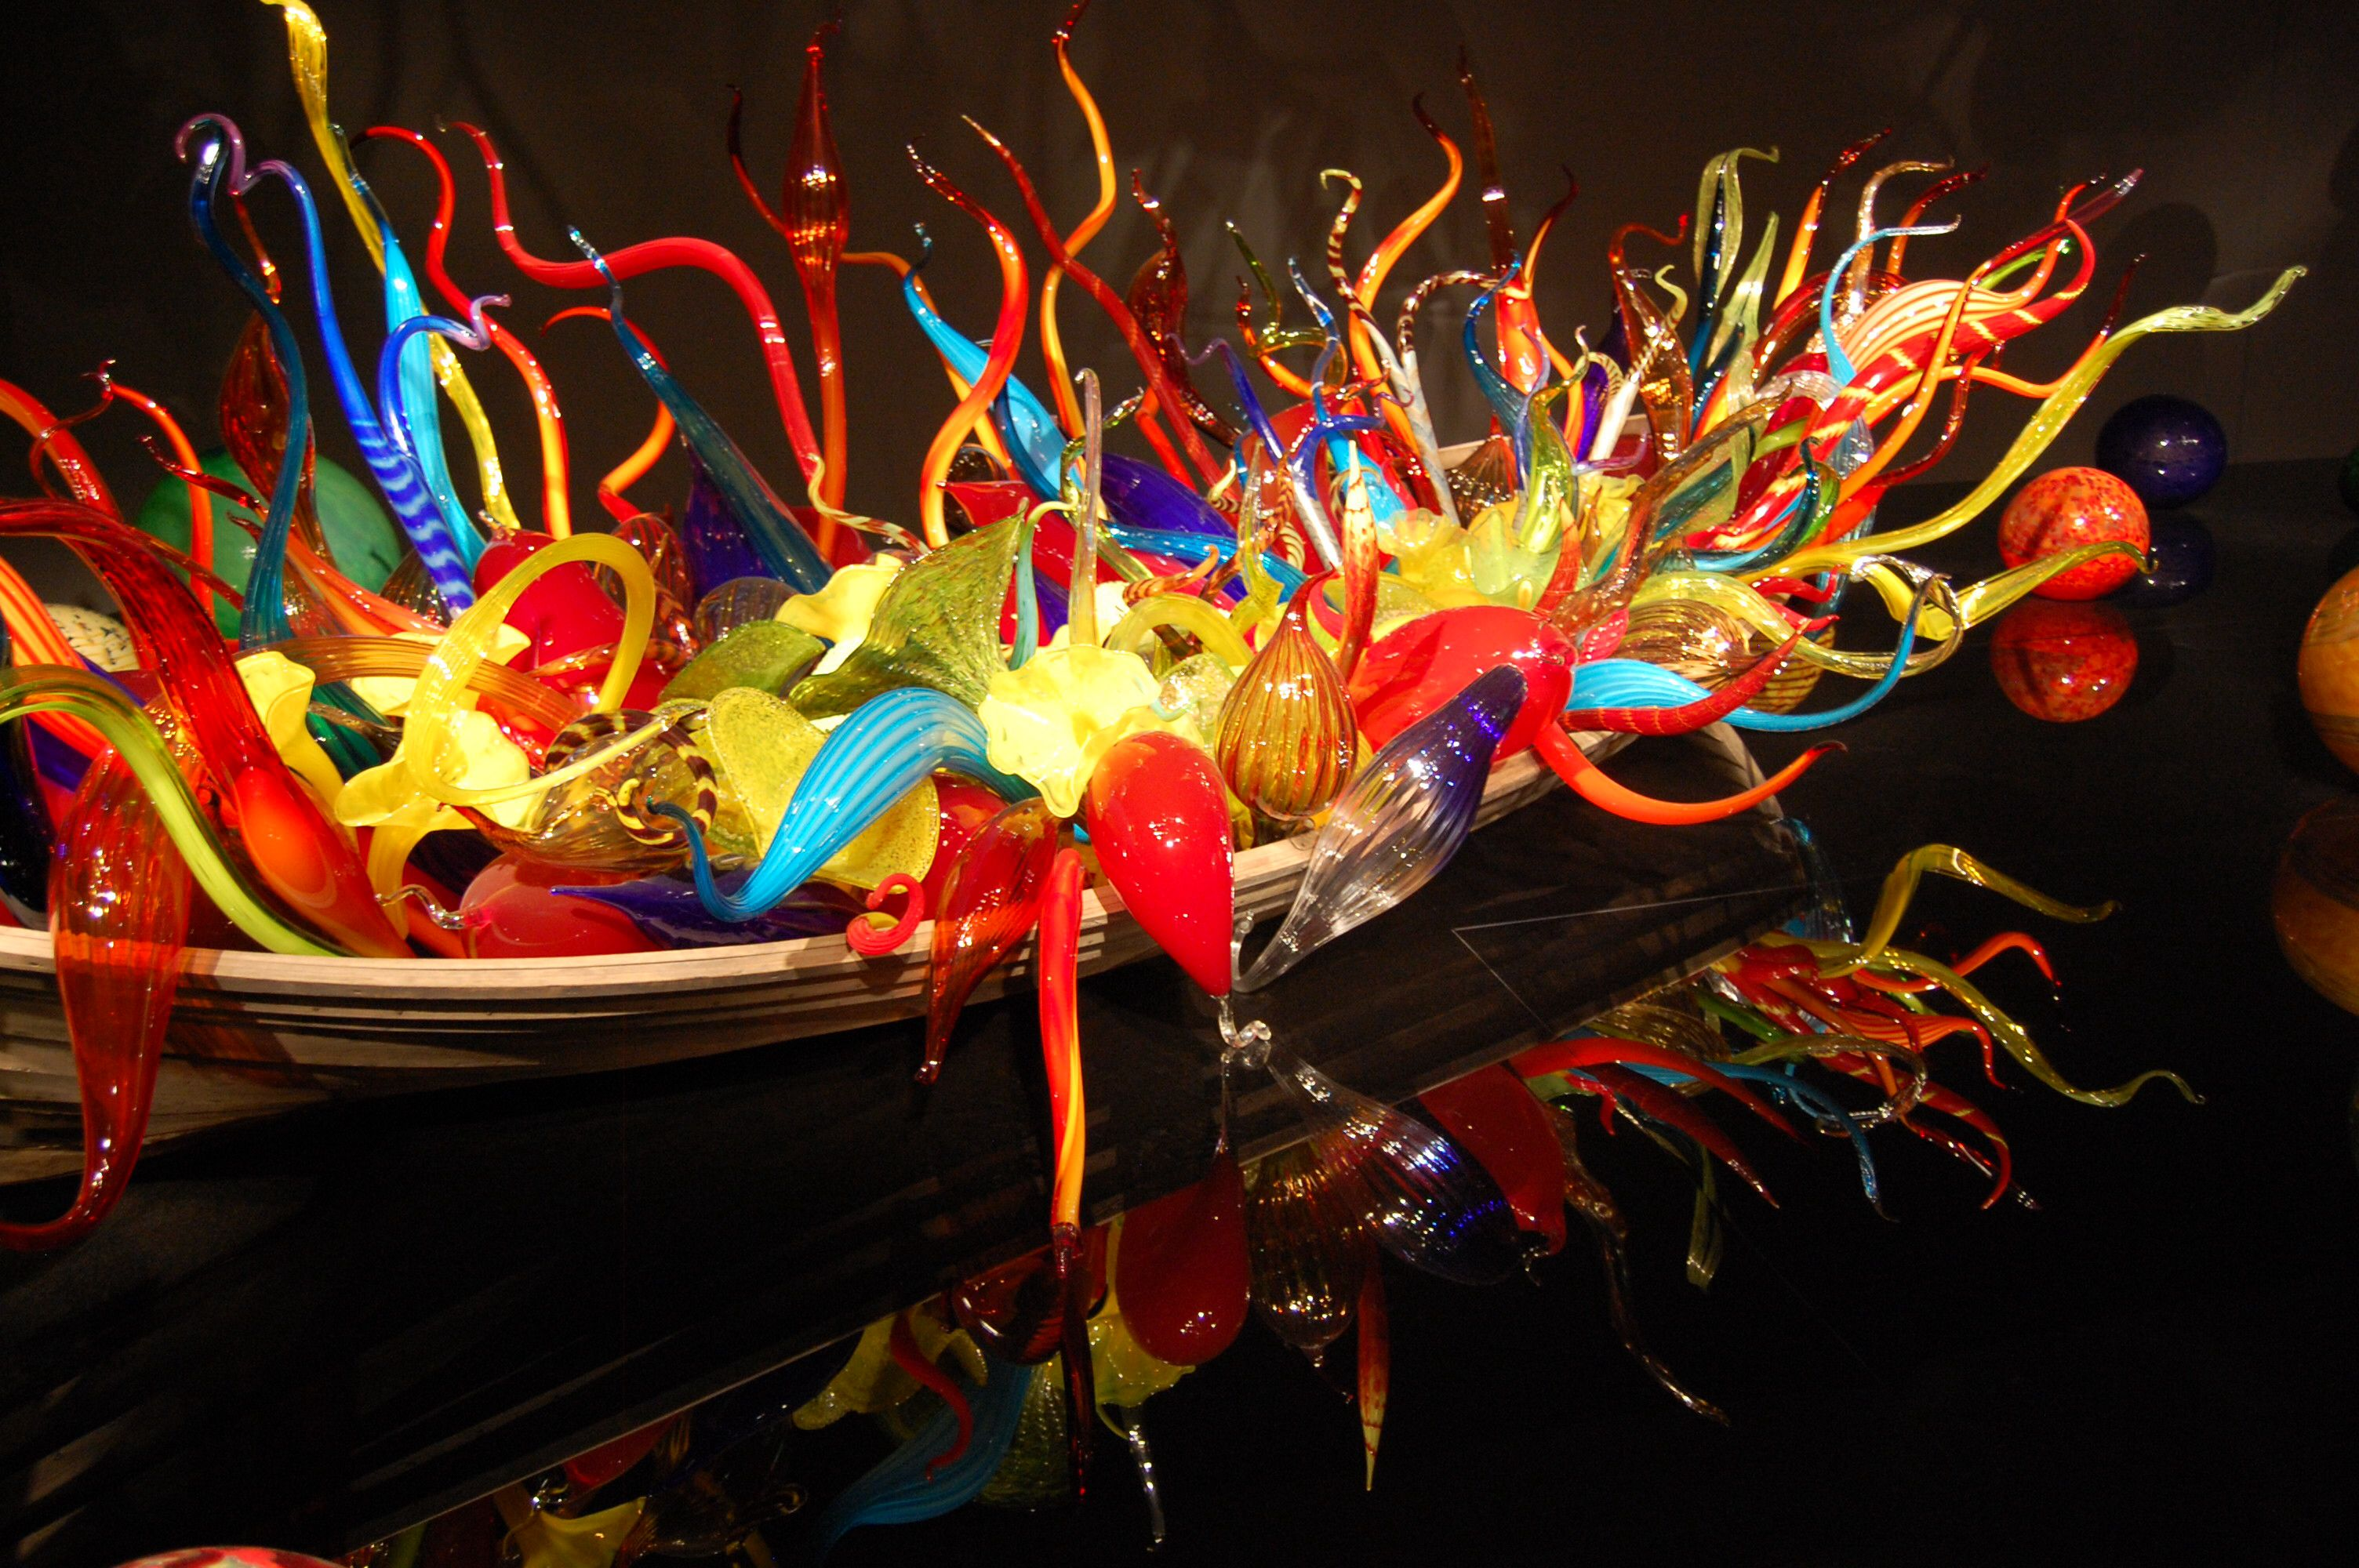 Chihuly exhibit at VMFA.